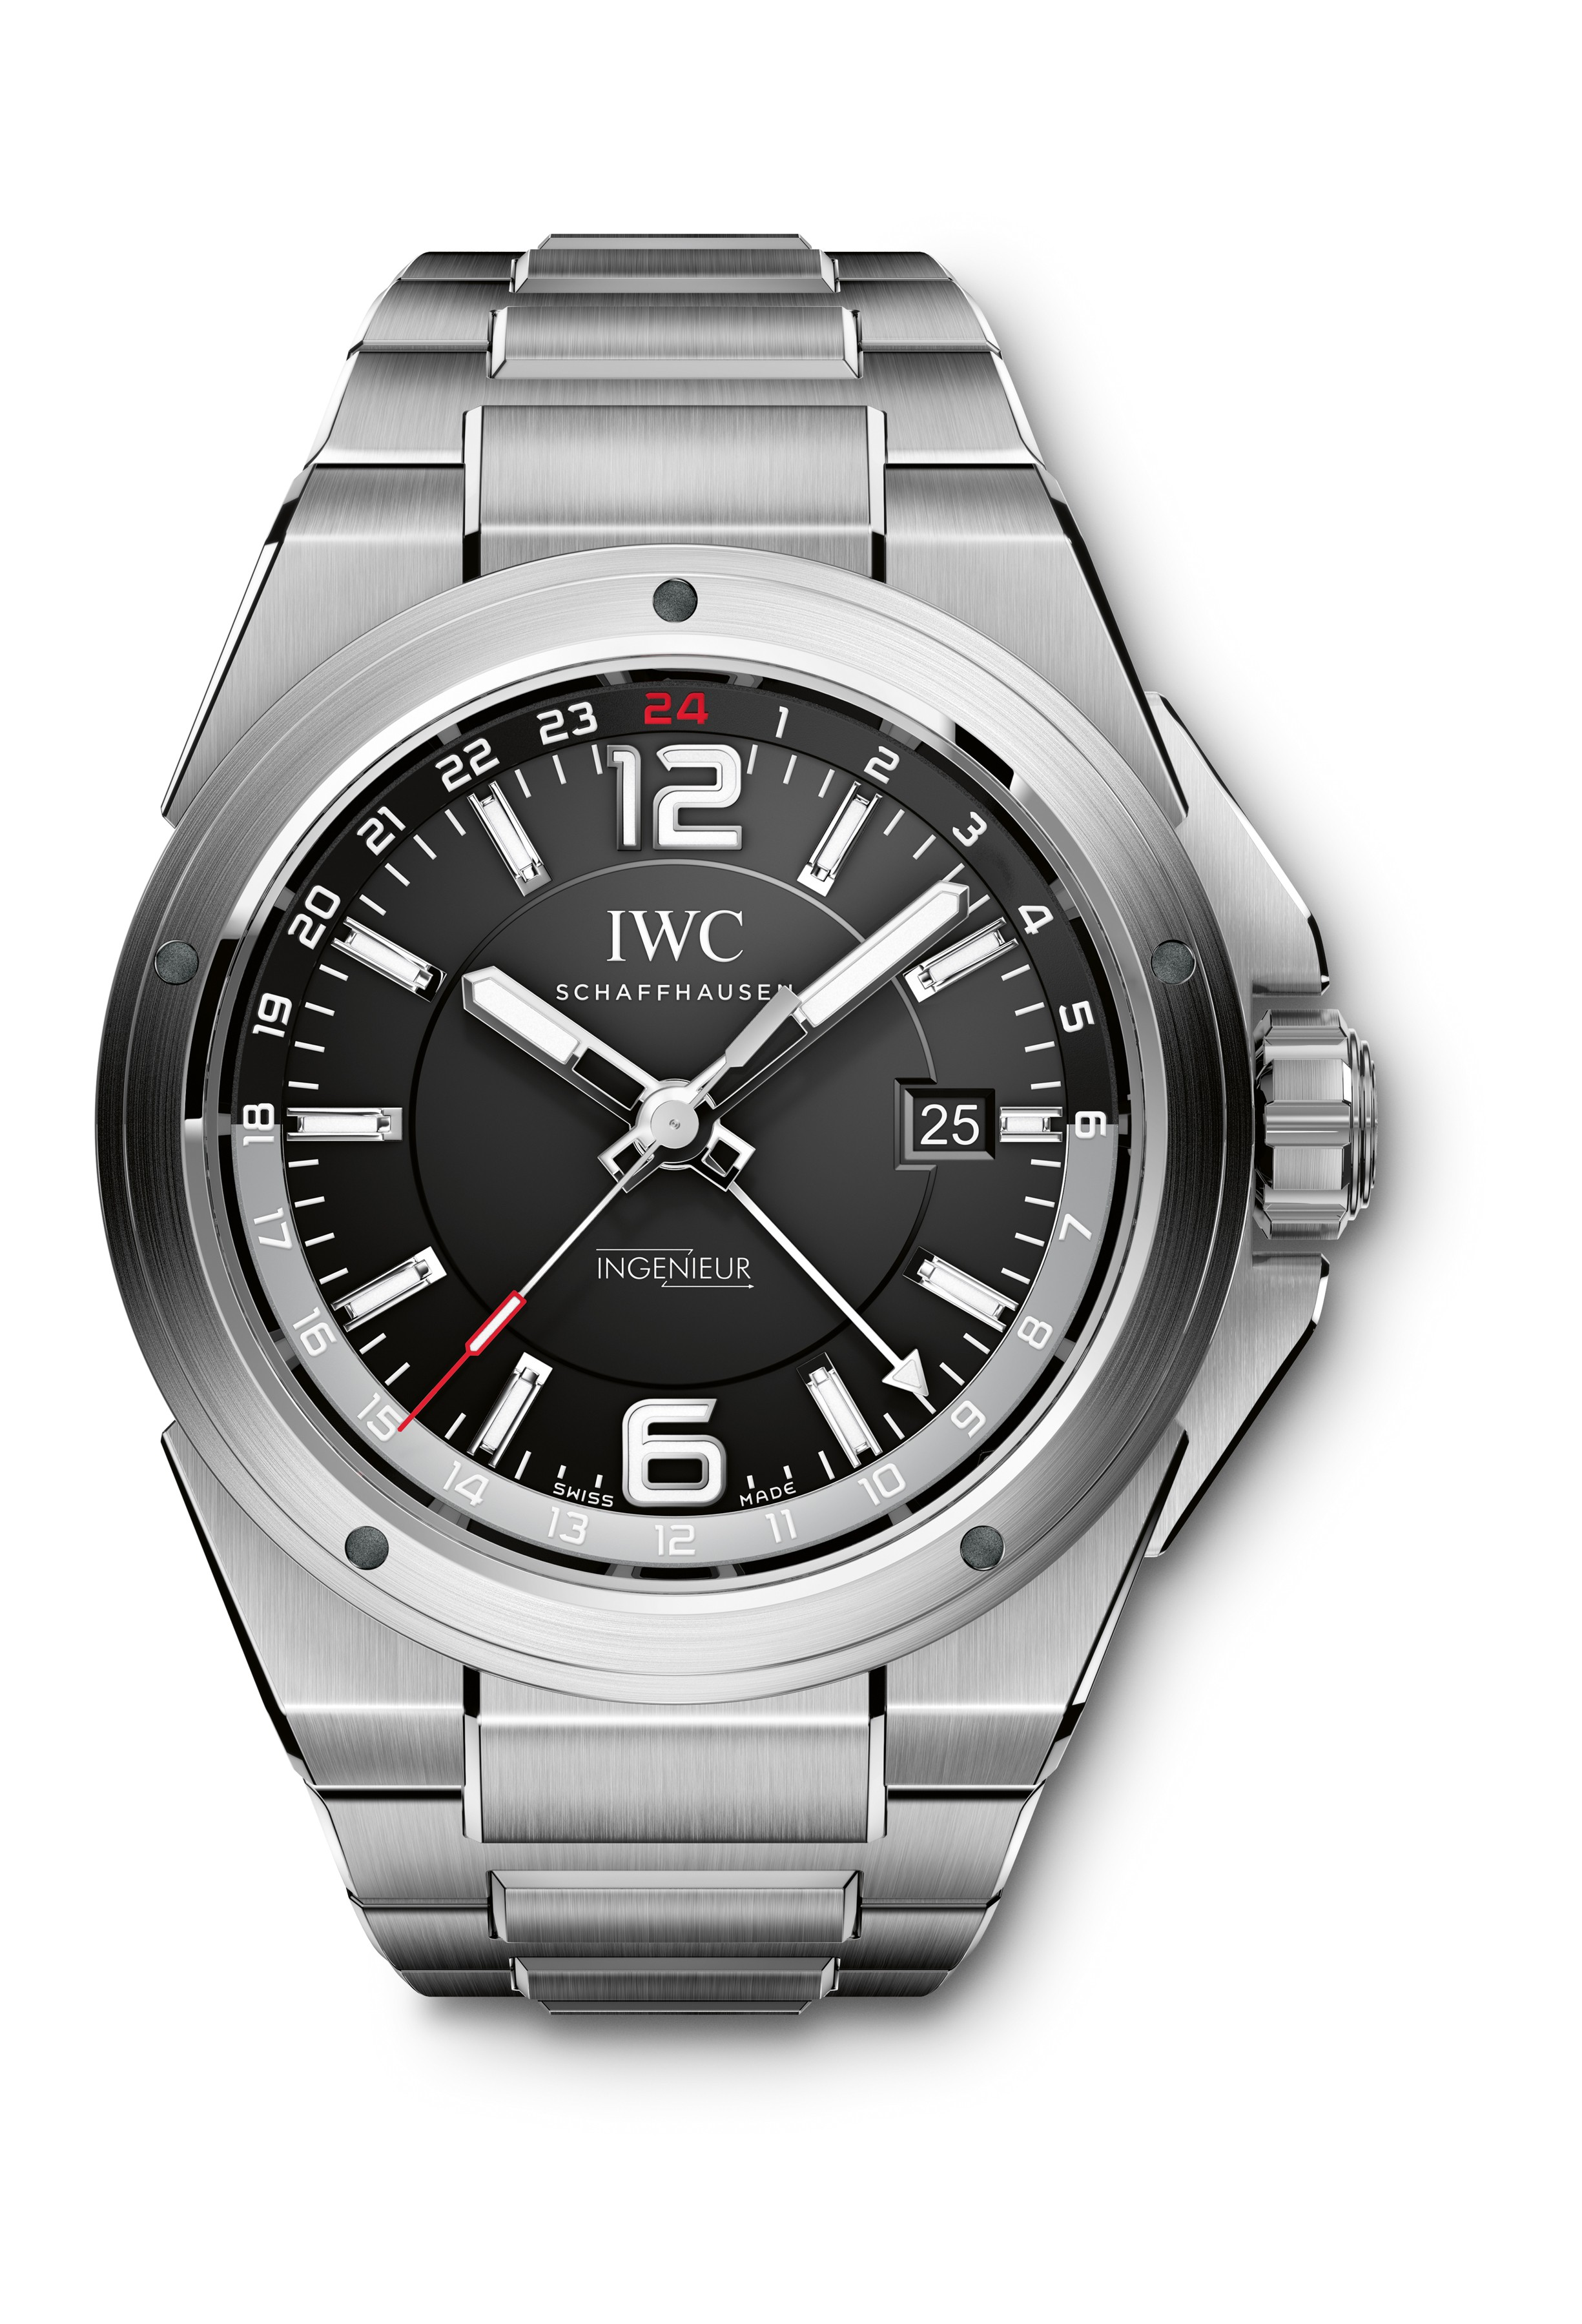 iwc ingenieur dual time iw3244. Black Bedroom Furniture Sets. Home Design Ideas